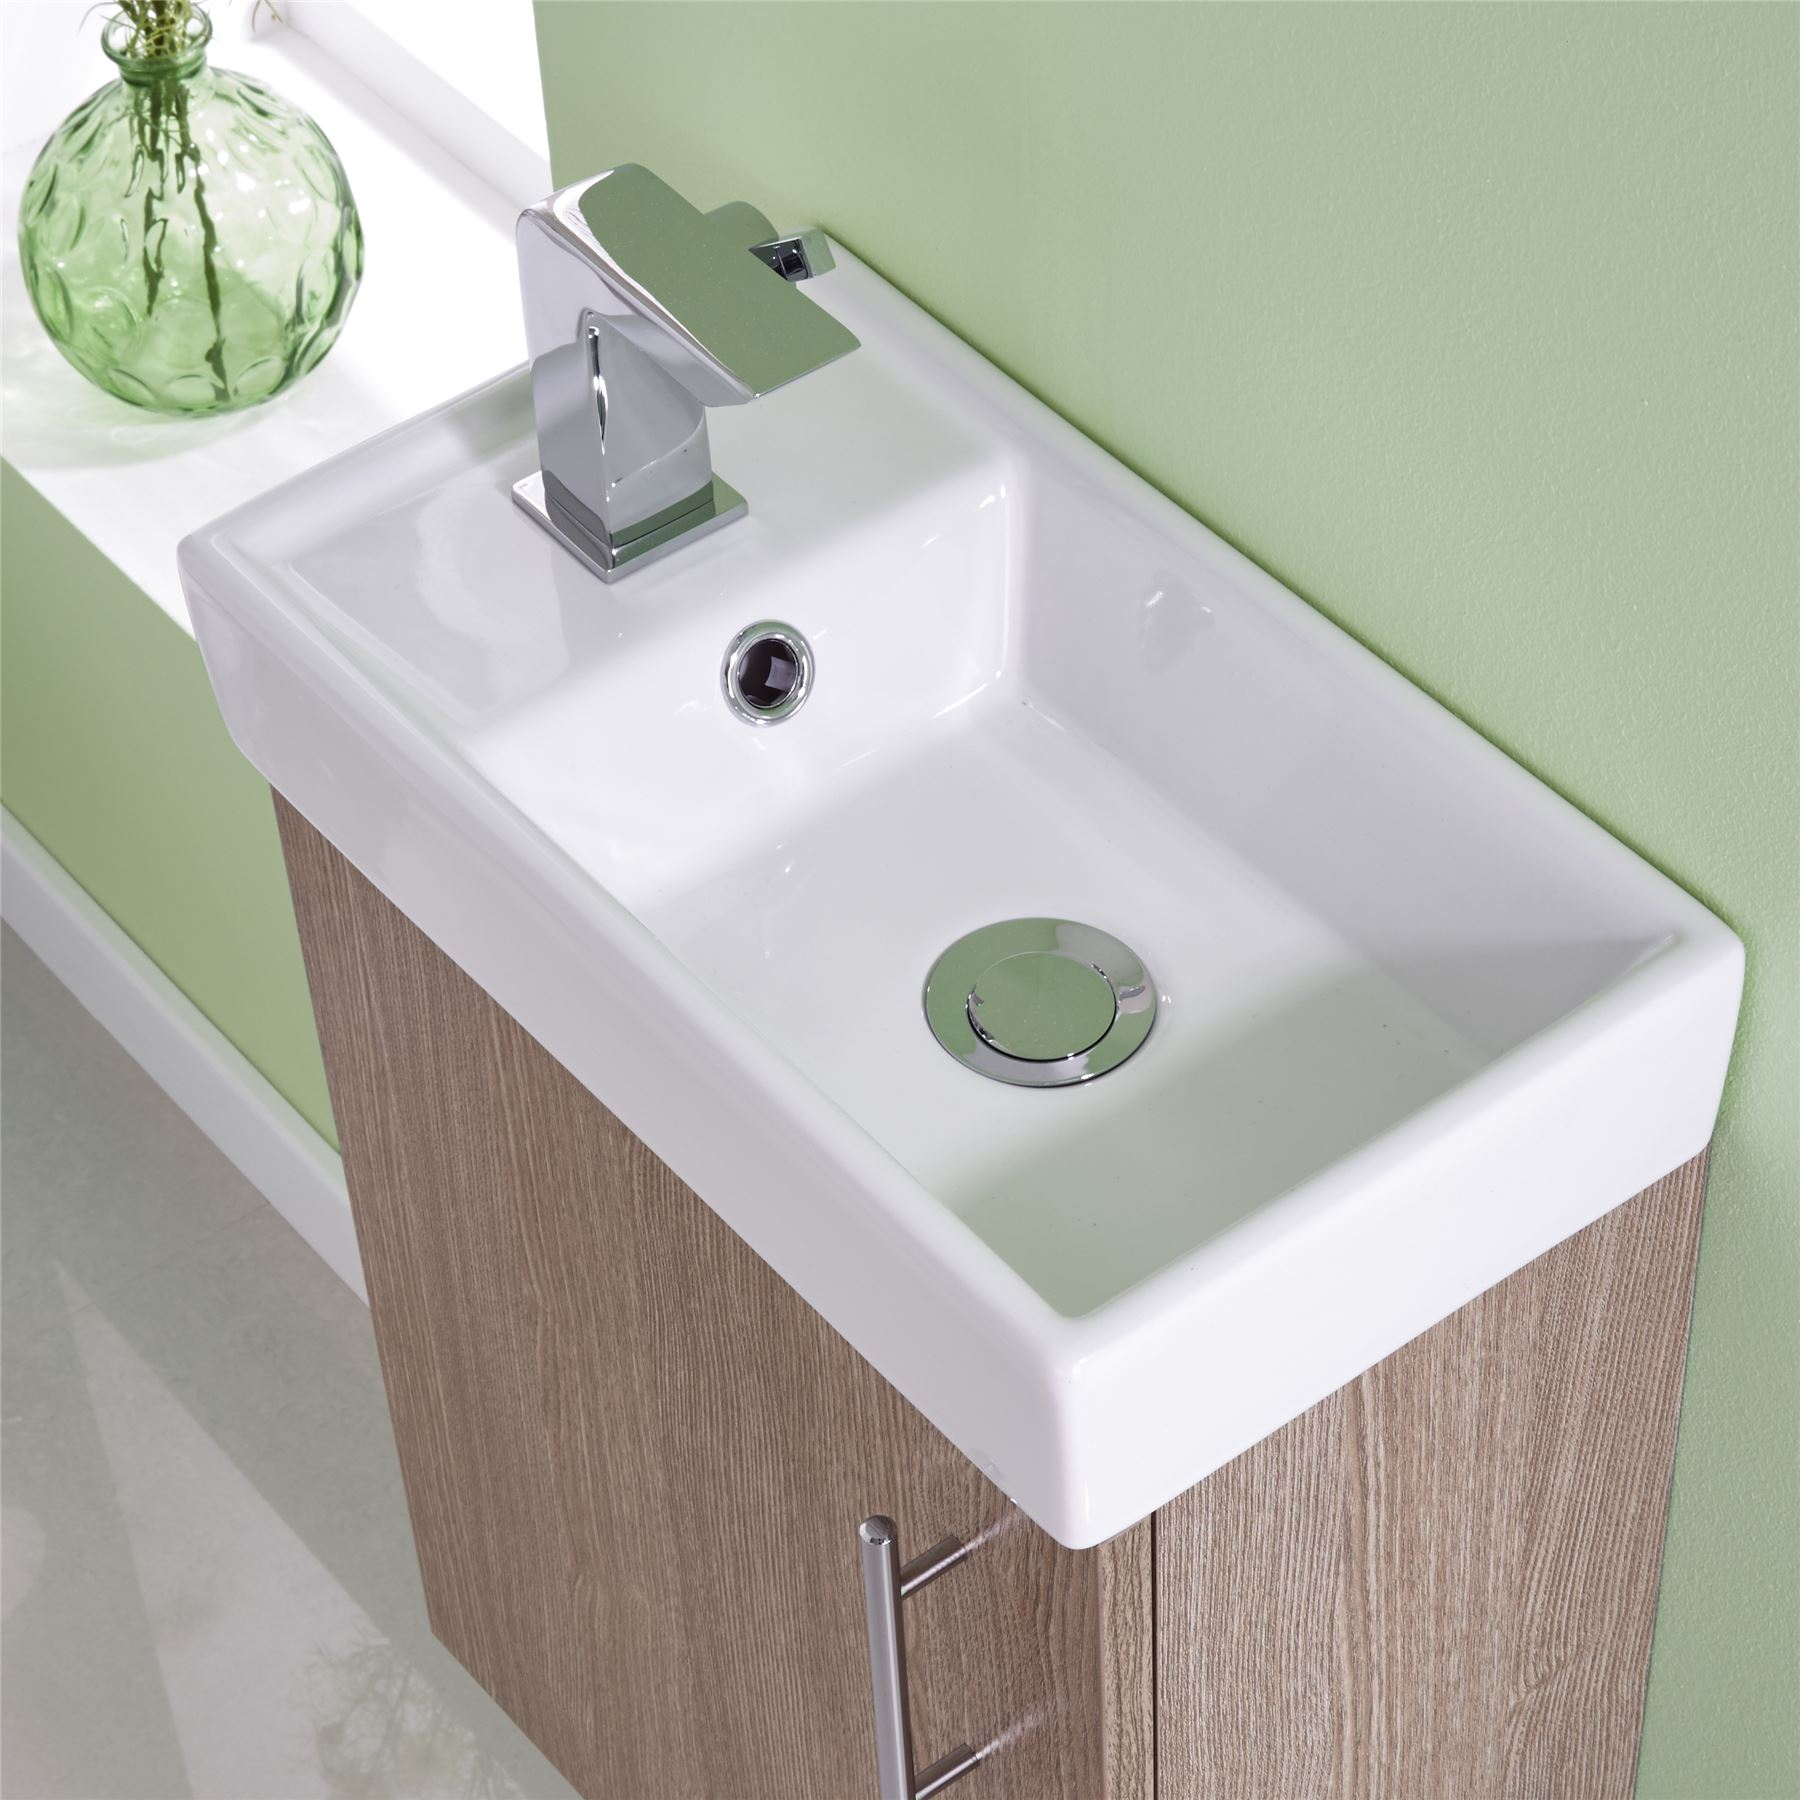 ... Modern Bathroom Cloakroom Vanity Unit & Basin Sink Floor & Wall Hung